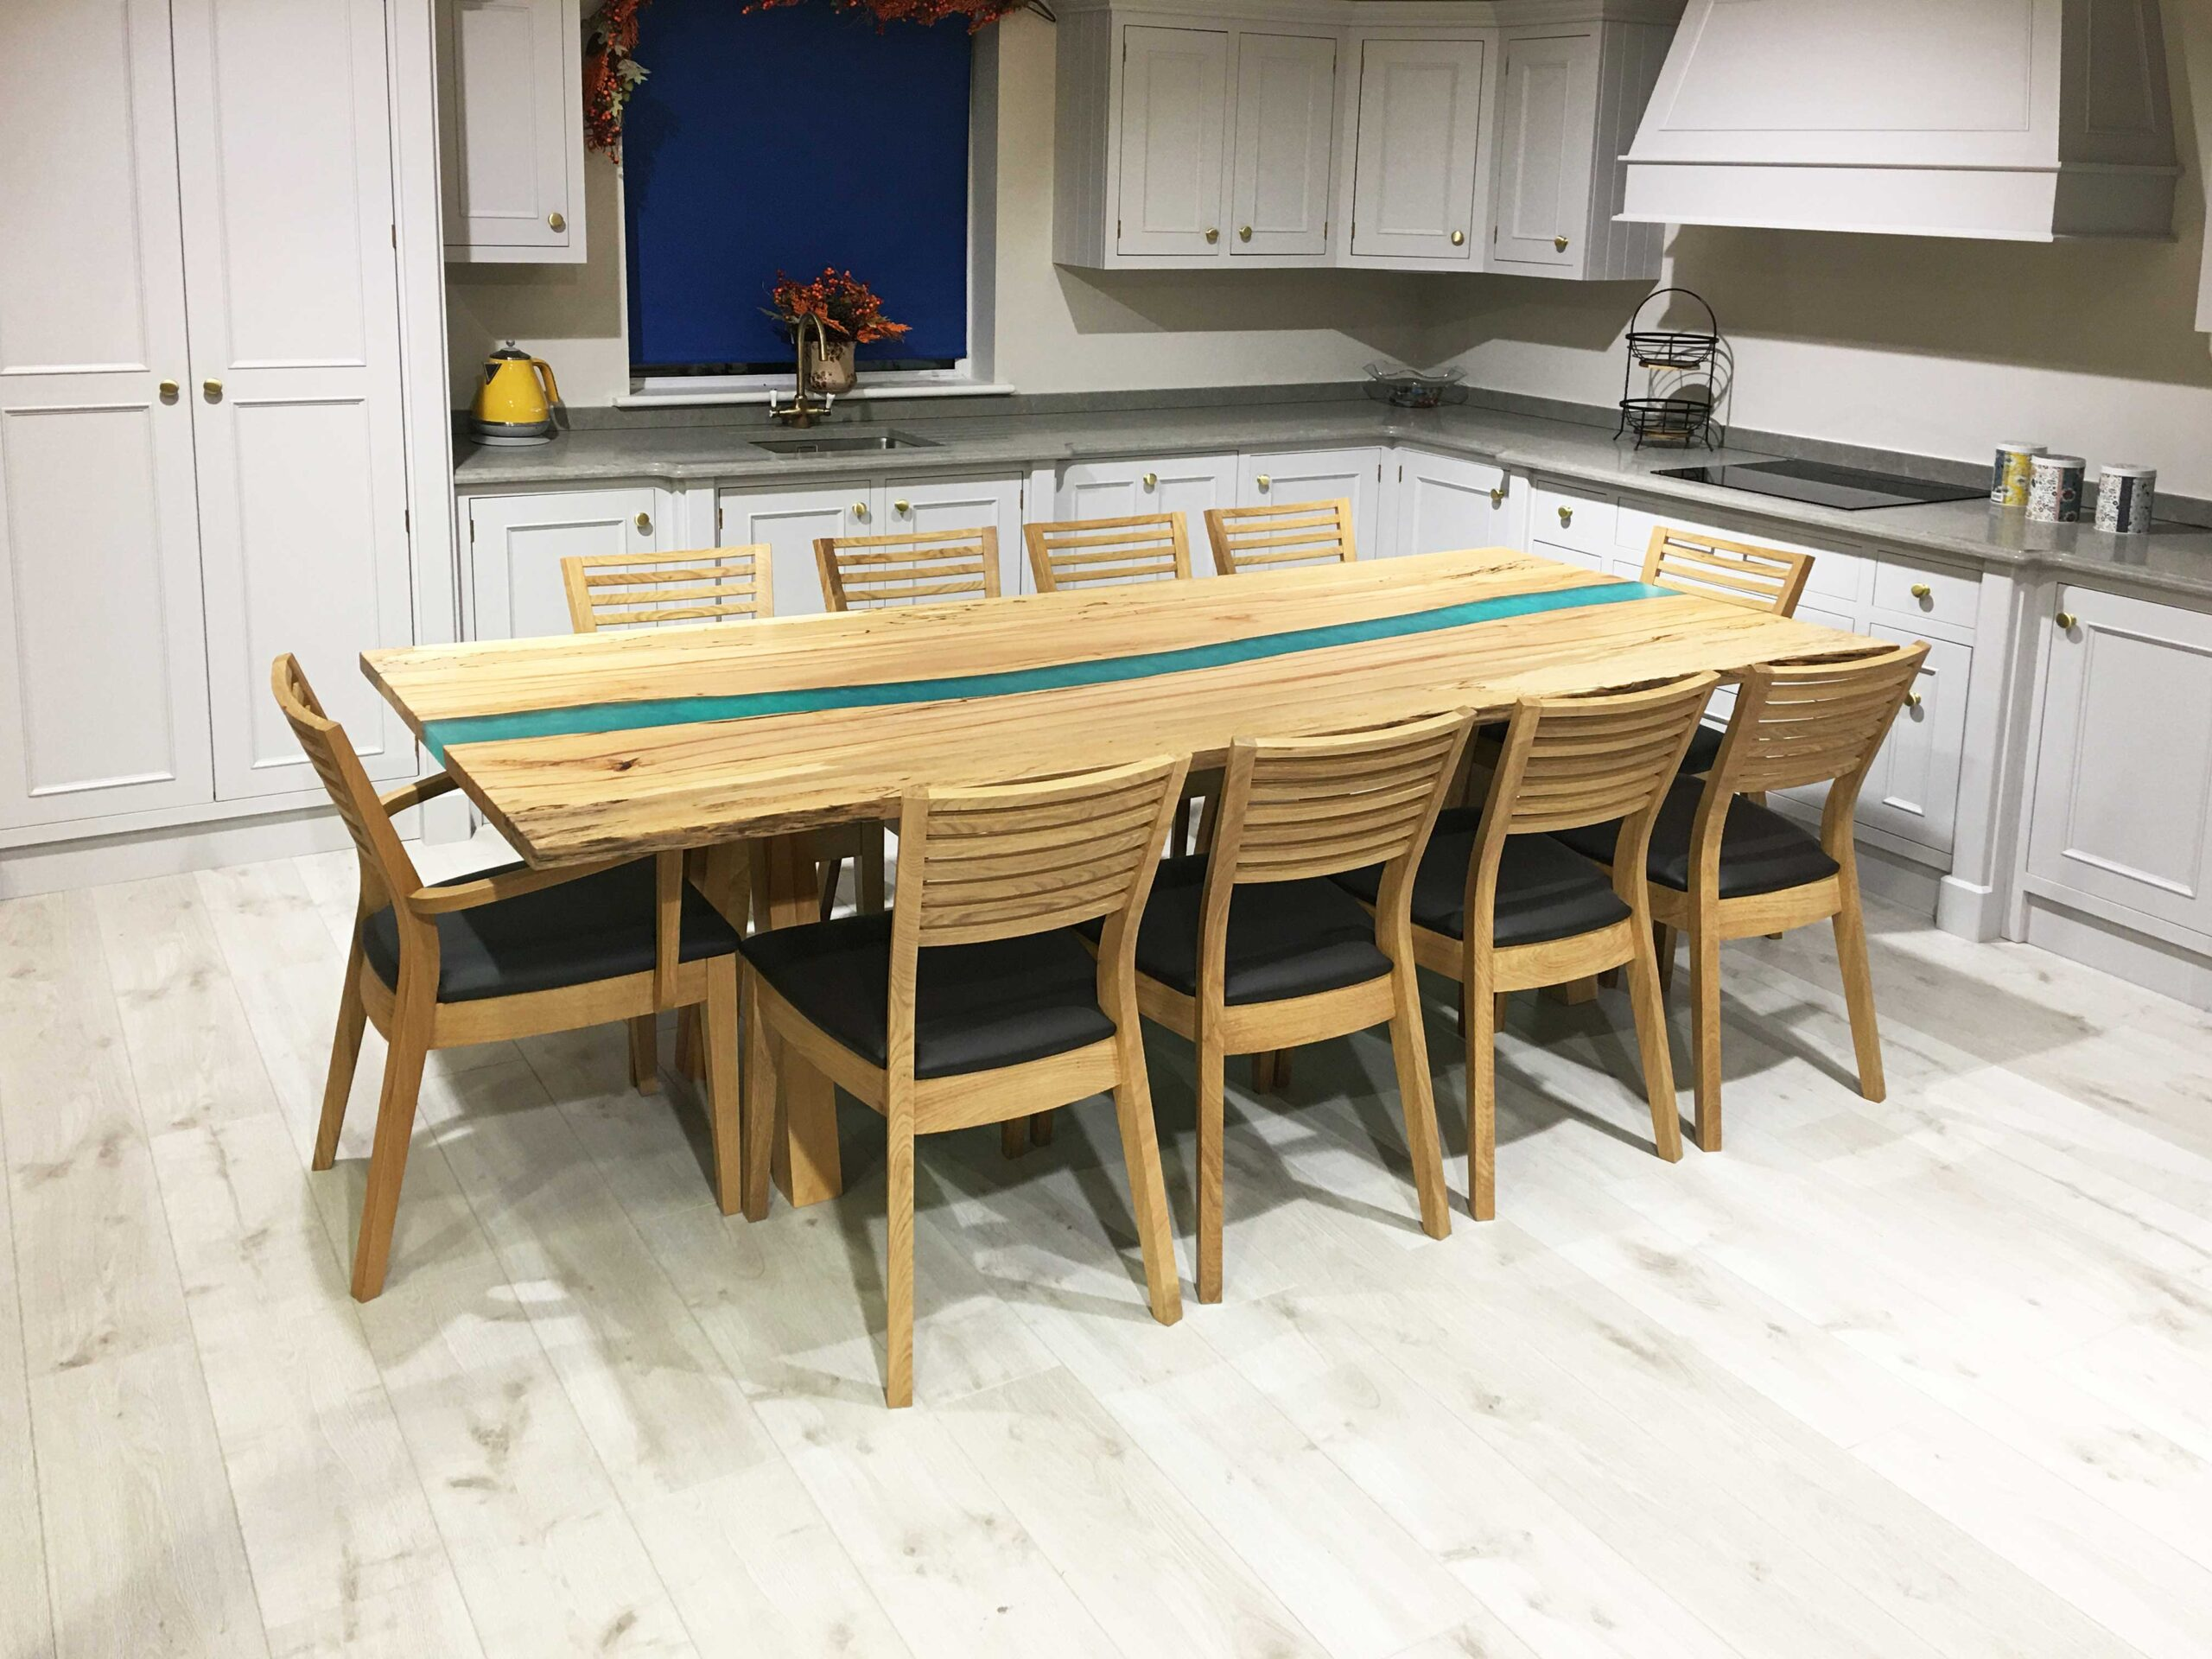 This is a stunning table made from spalted beech from a tree that came down in a storm in 2017. We love working with rescued timber, bringing the best of nature back to life and creating beautiful pieces of furniture. This table has turquoise coloured resin and solid timber legs.